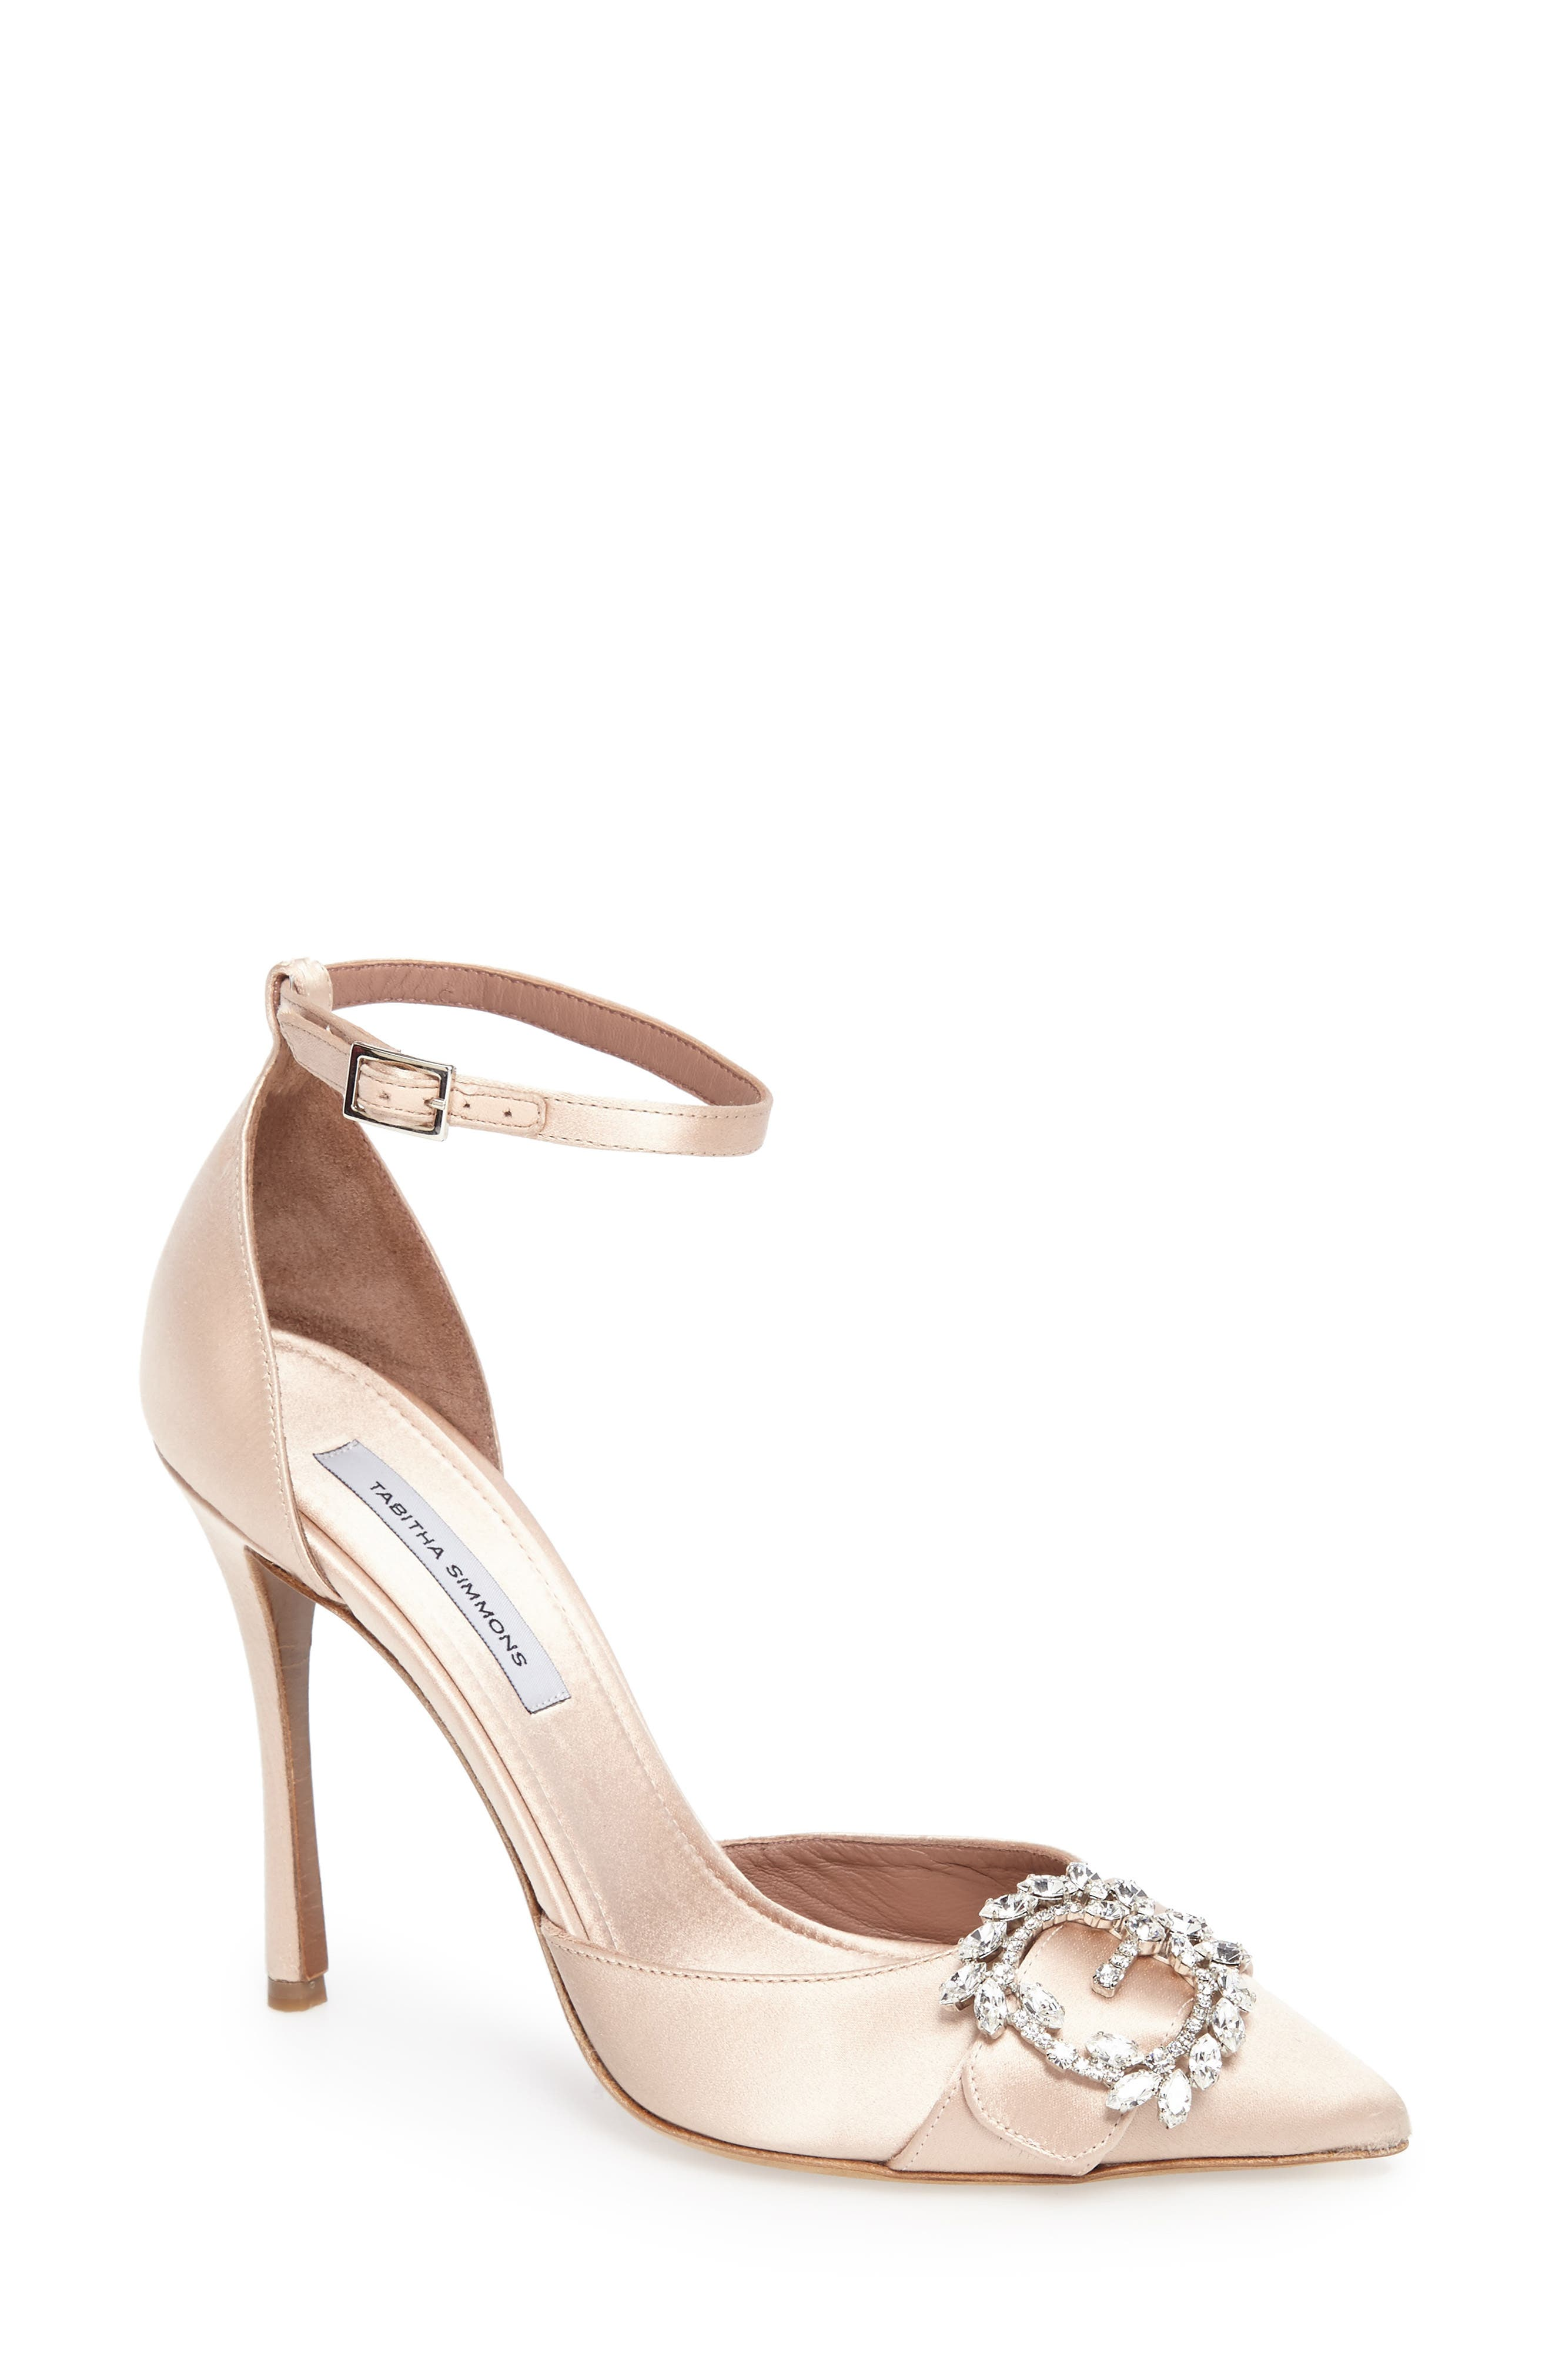 Alternate Image 1 Selected - Tabitha Simmons Tie The Knot Crystal Buckle Pump (Women)